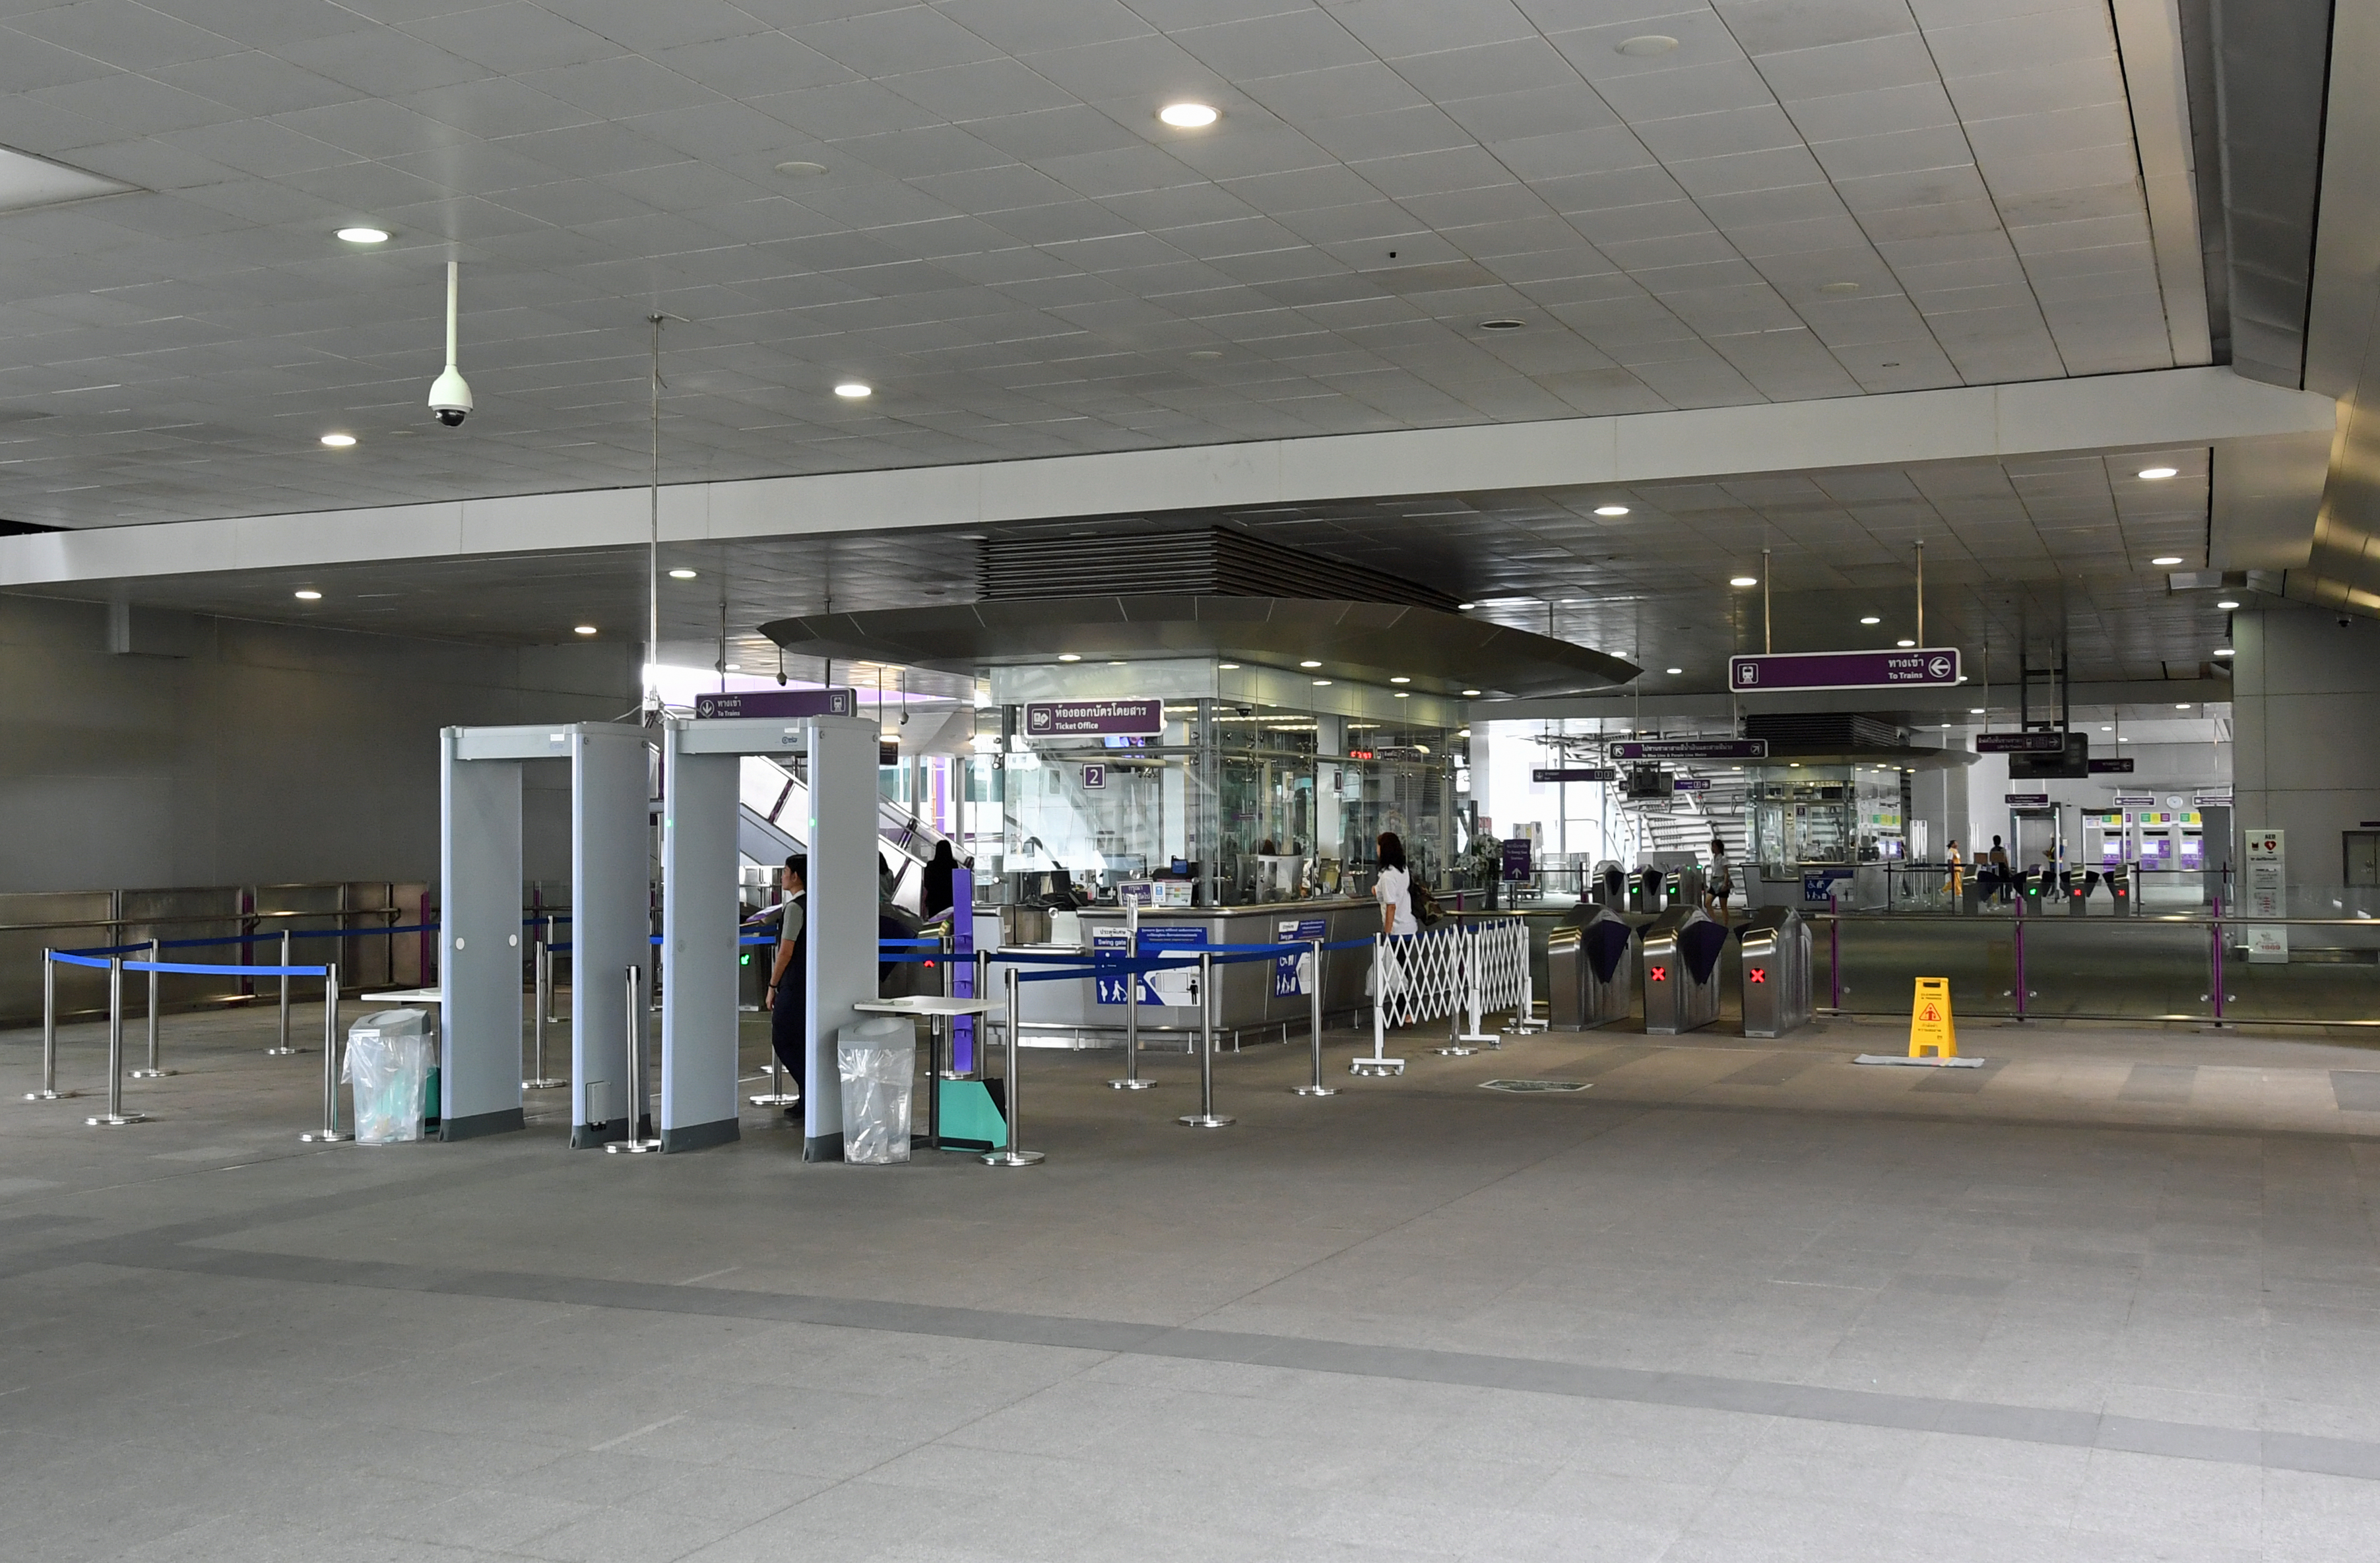 dg262517-concourse-purple-line-station-tao-poon-bangkok-thailand-11-1-16